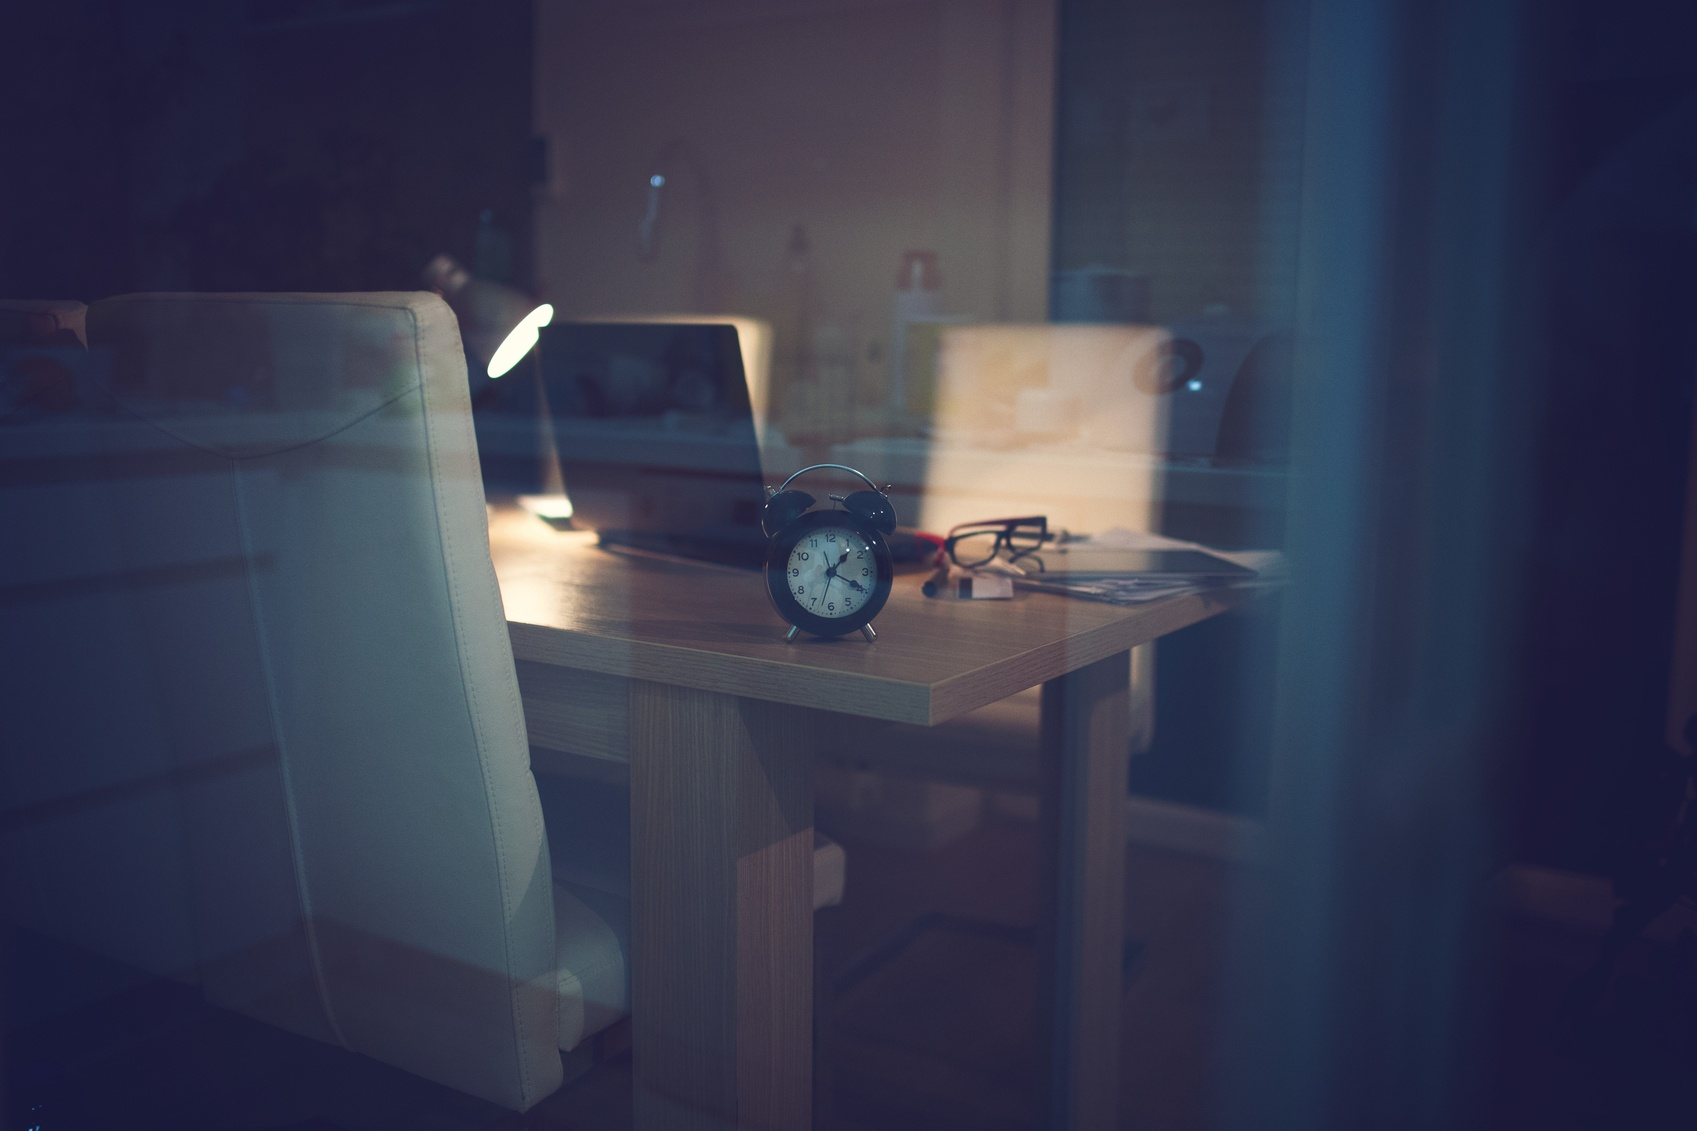 Low key photo of office supplies indicating night work from home